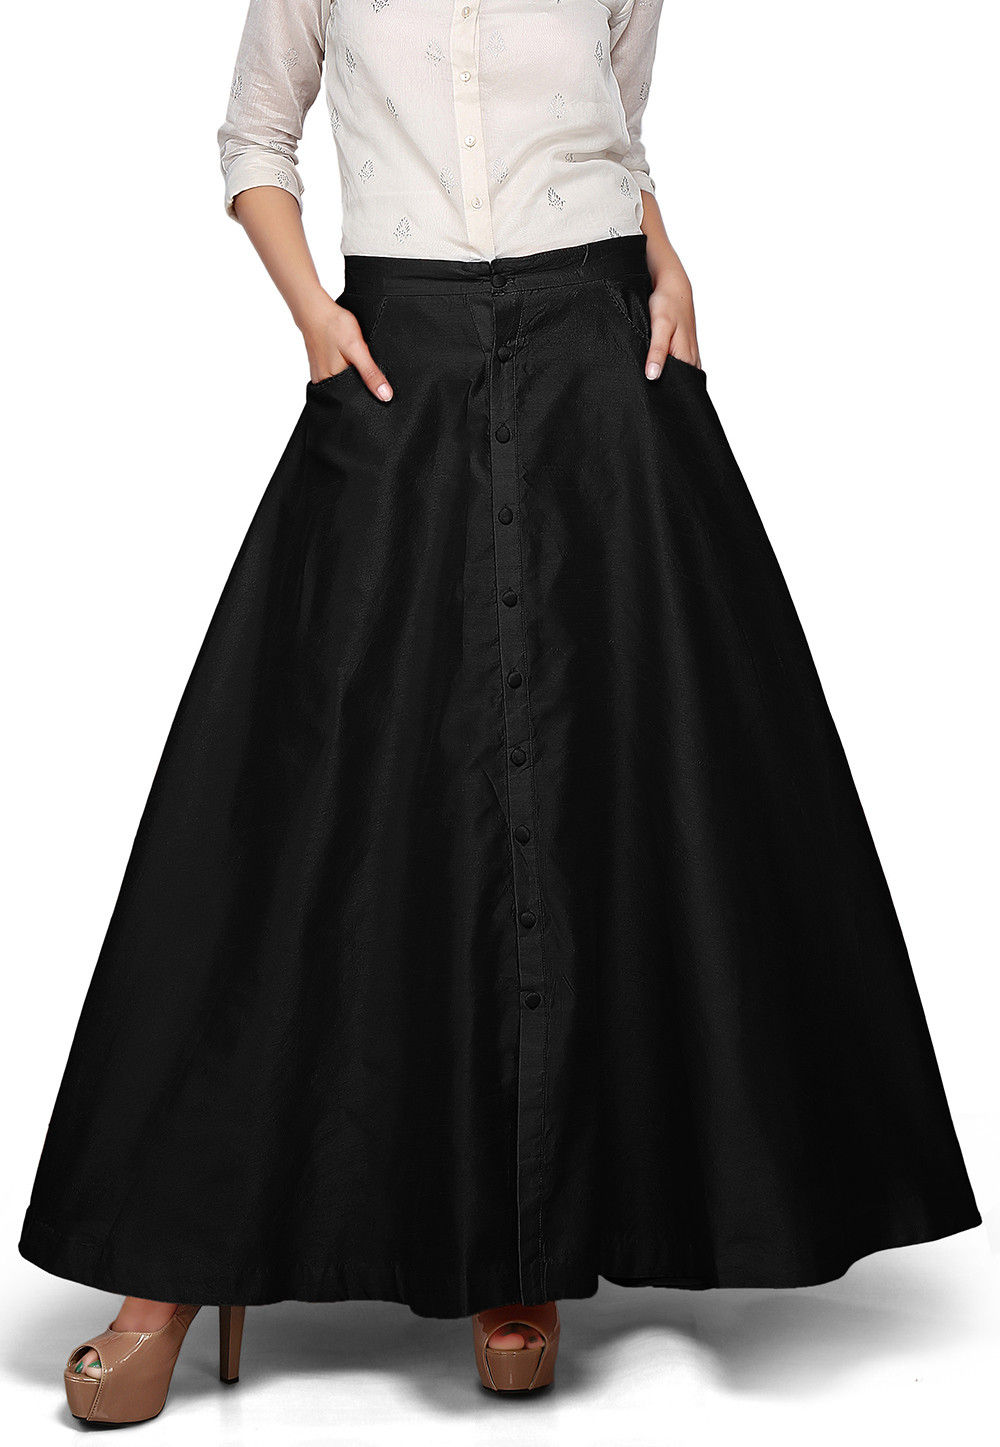 Plain Dupion Silk Long Skirt in Black